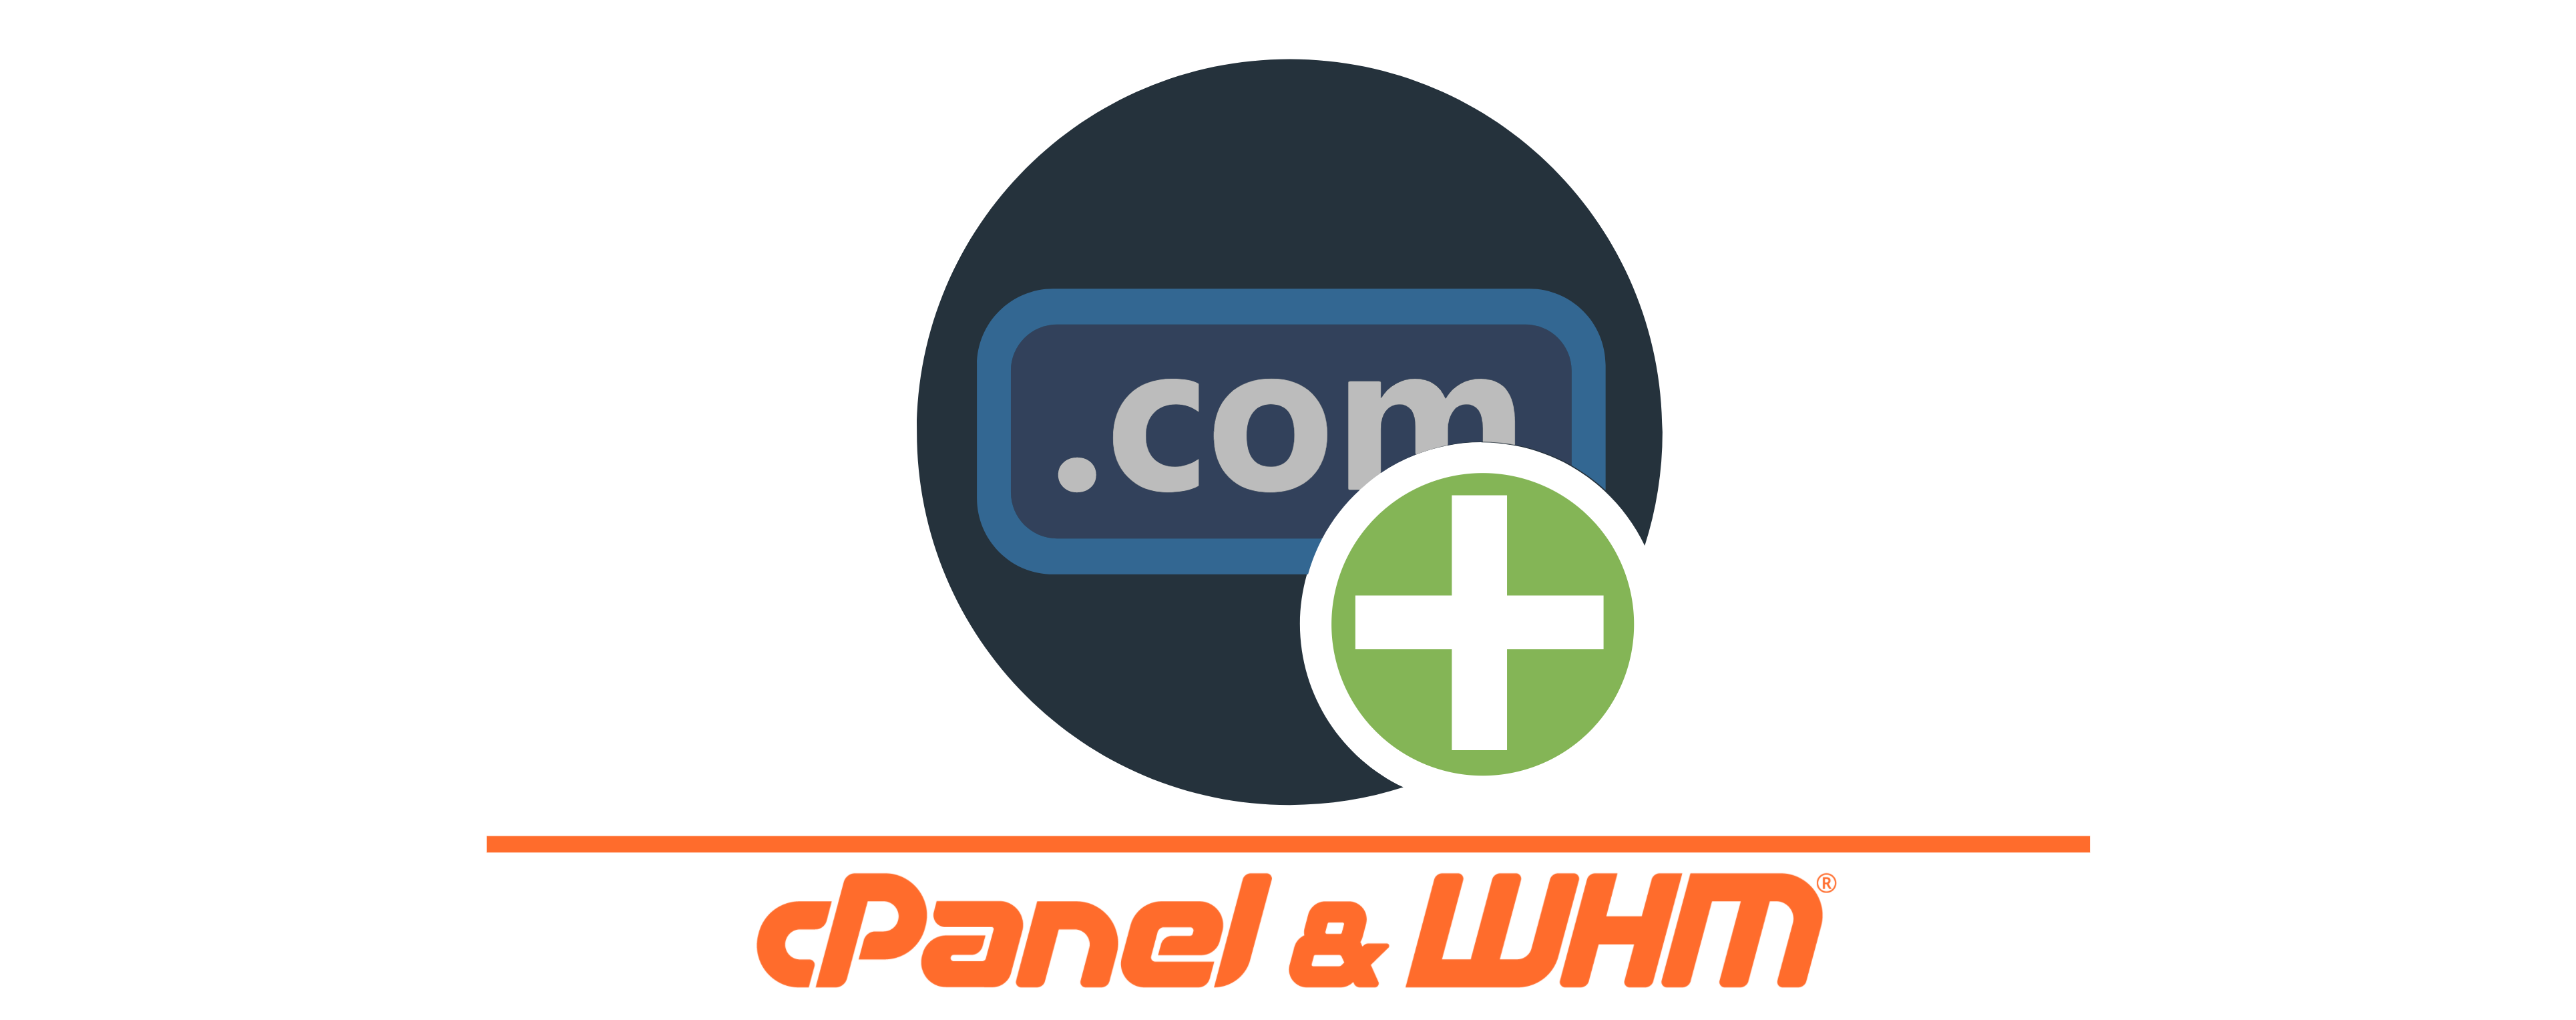 Managing Multiple Domains from a Single Hosting Account